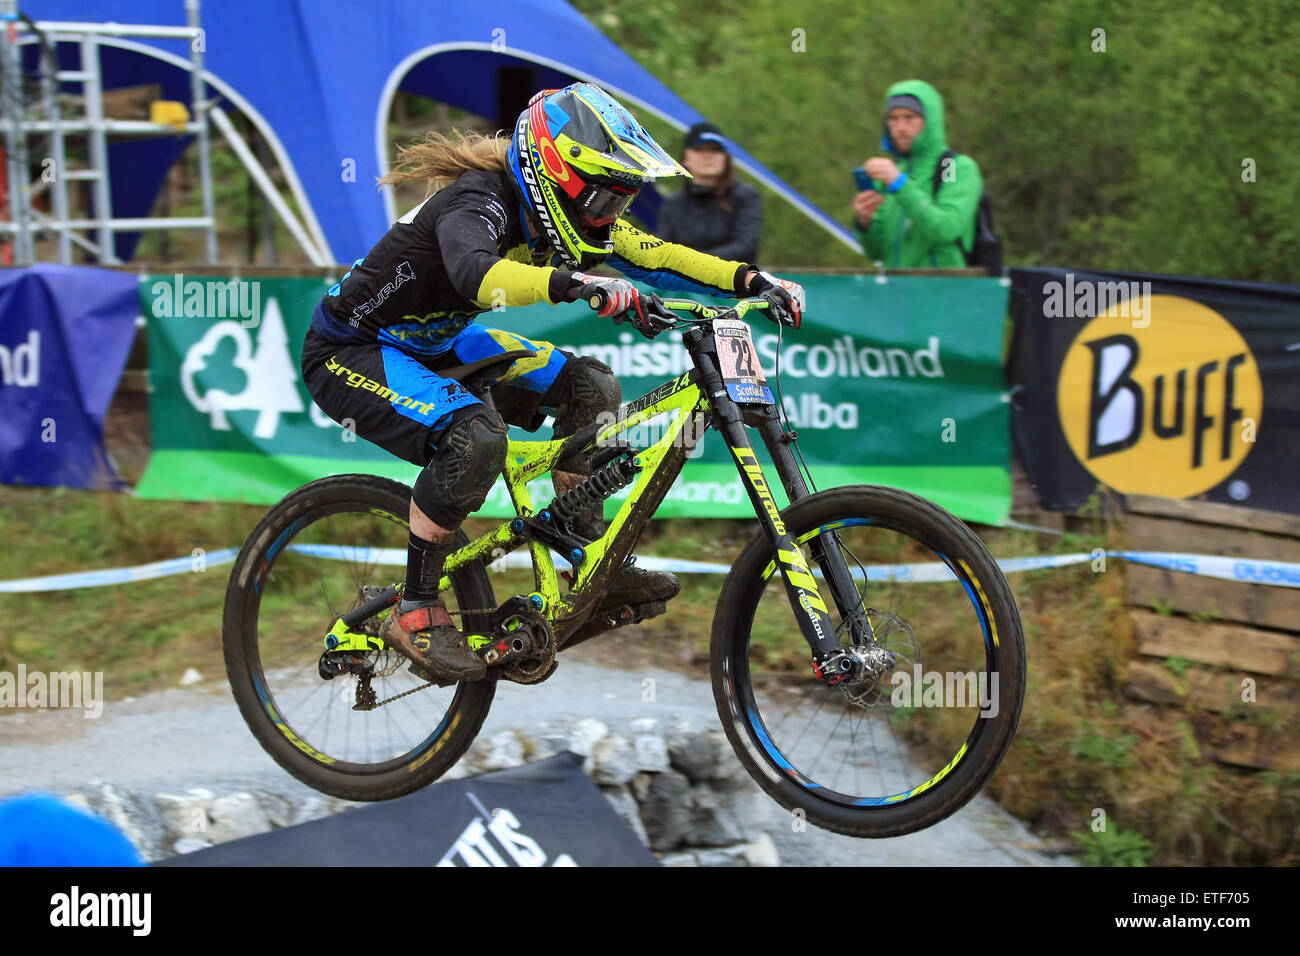 Casey Brown, Bergamont Hayes UCI Mountain Bike World Cup at Fort William, Scotland on 6-7th June 2015 - Stock Image